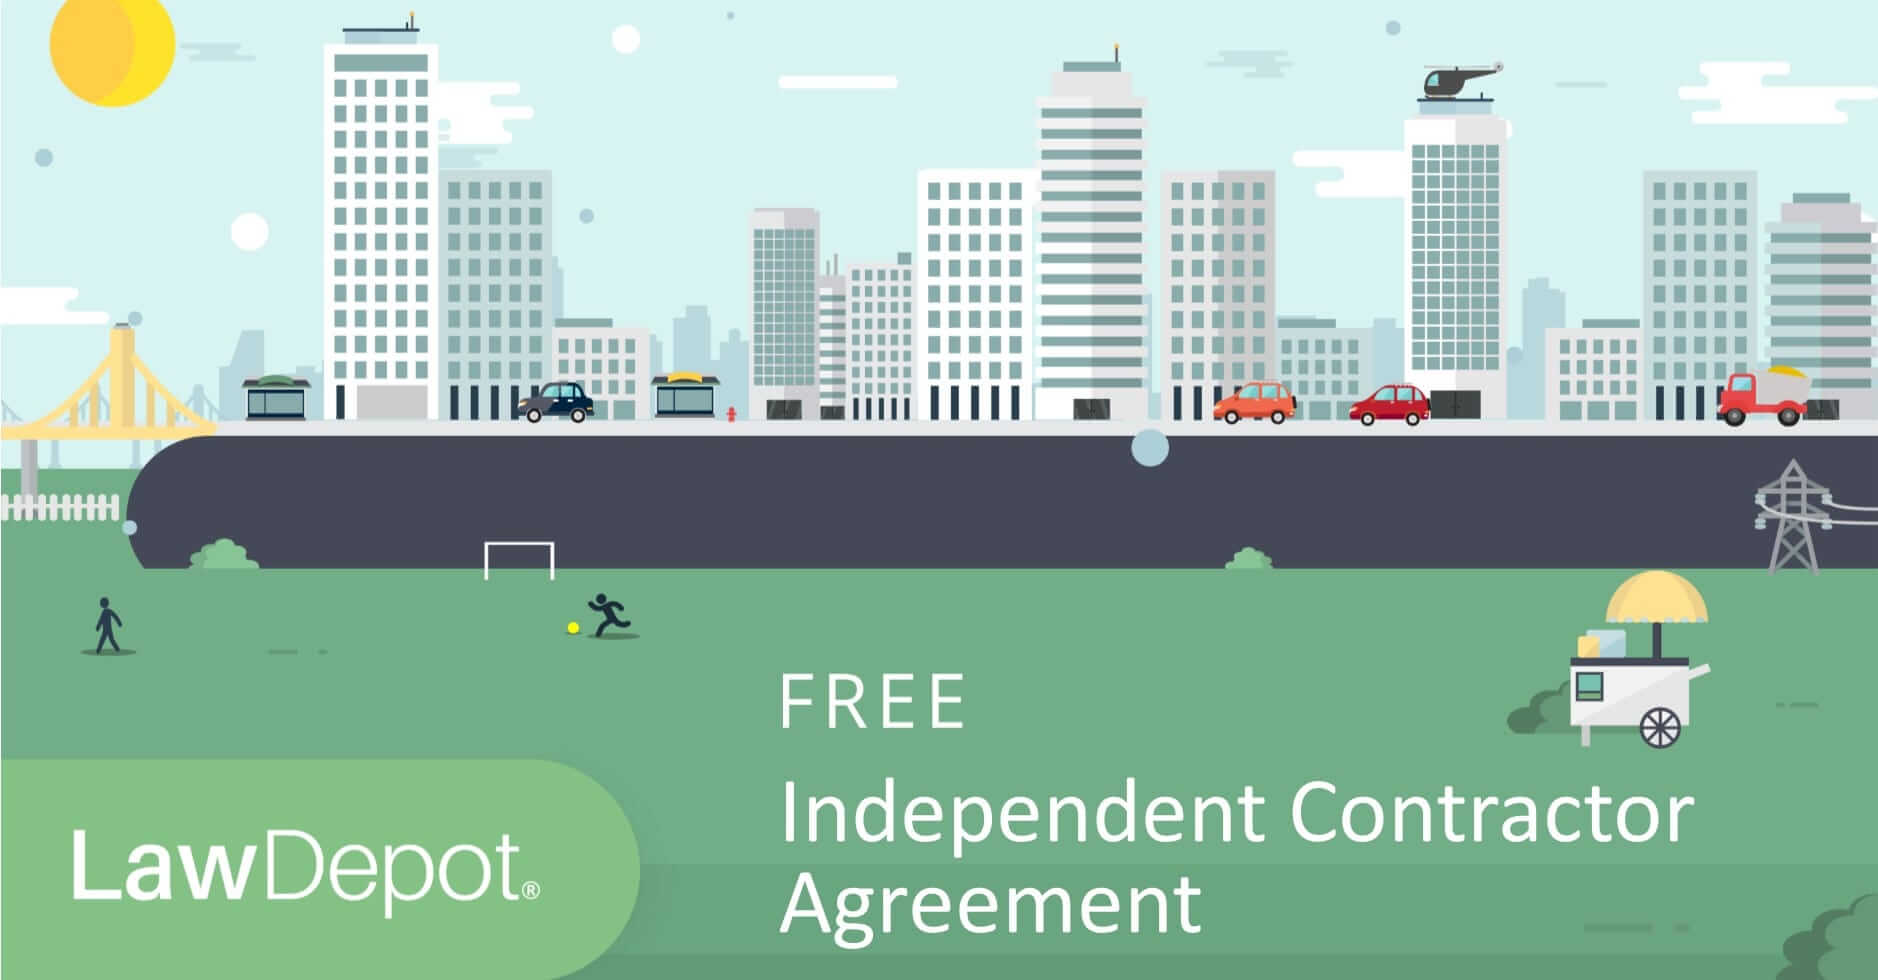 Free Independent Contractor Agreement - Create, Download